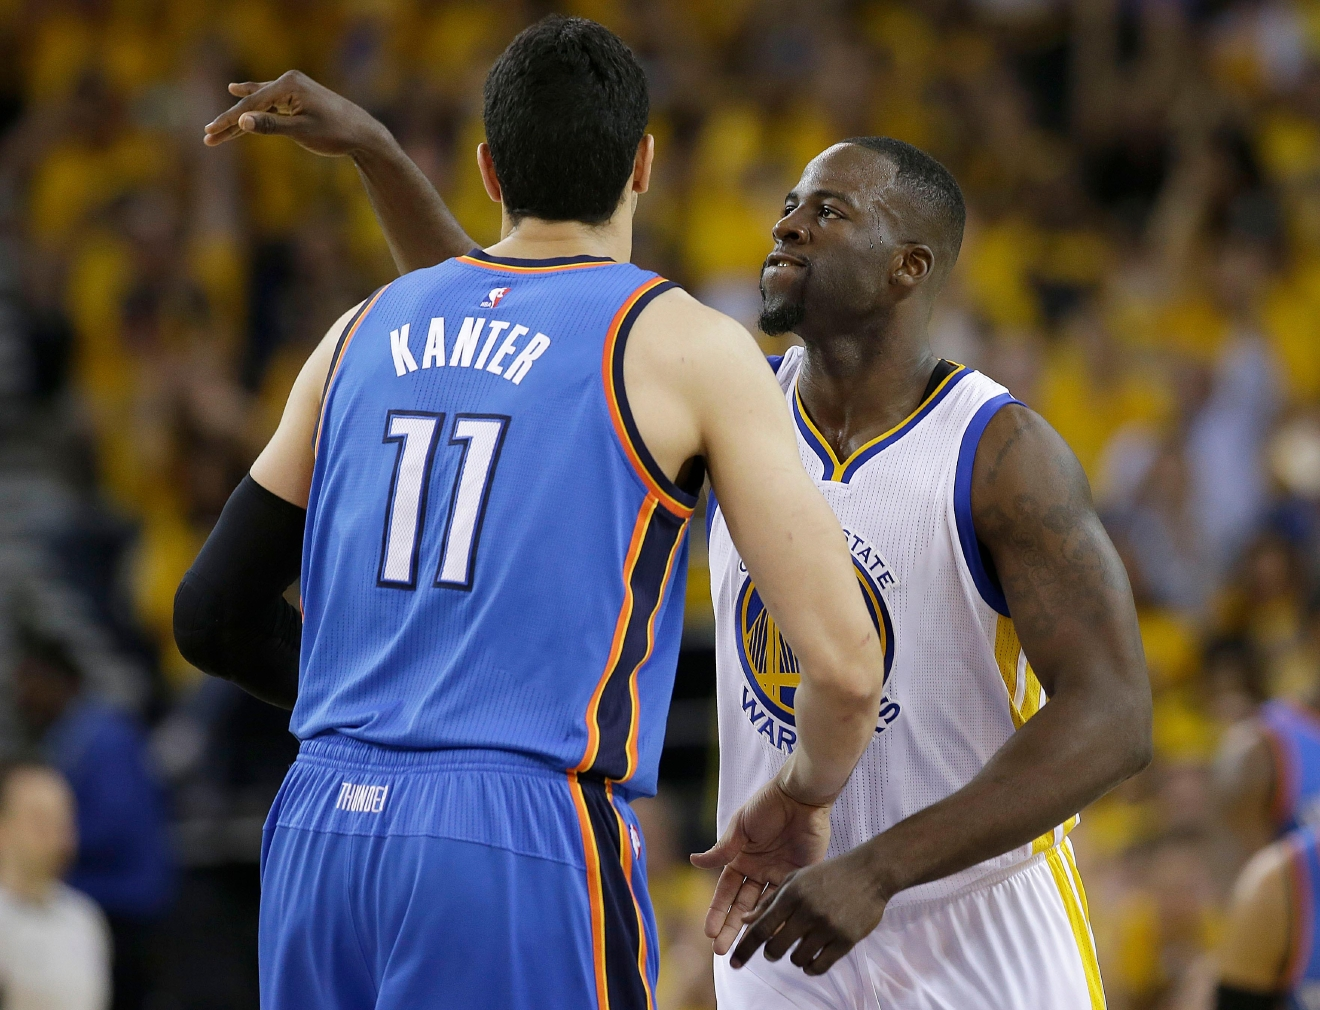 Golden State Warriors forward Draymond Green, right, reacts after scoring by looking at Oklahoma City Thunder center Enes Kanter (11) during the first half of Game 2 of the NBA basketball Western Conference finals in Oakland, Calif., Wednesday, May 18, 2016. (AP Photo/Marcio Jose Sanchez)